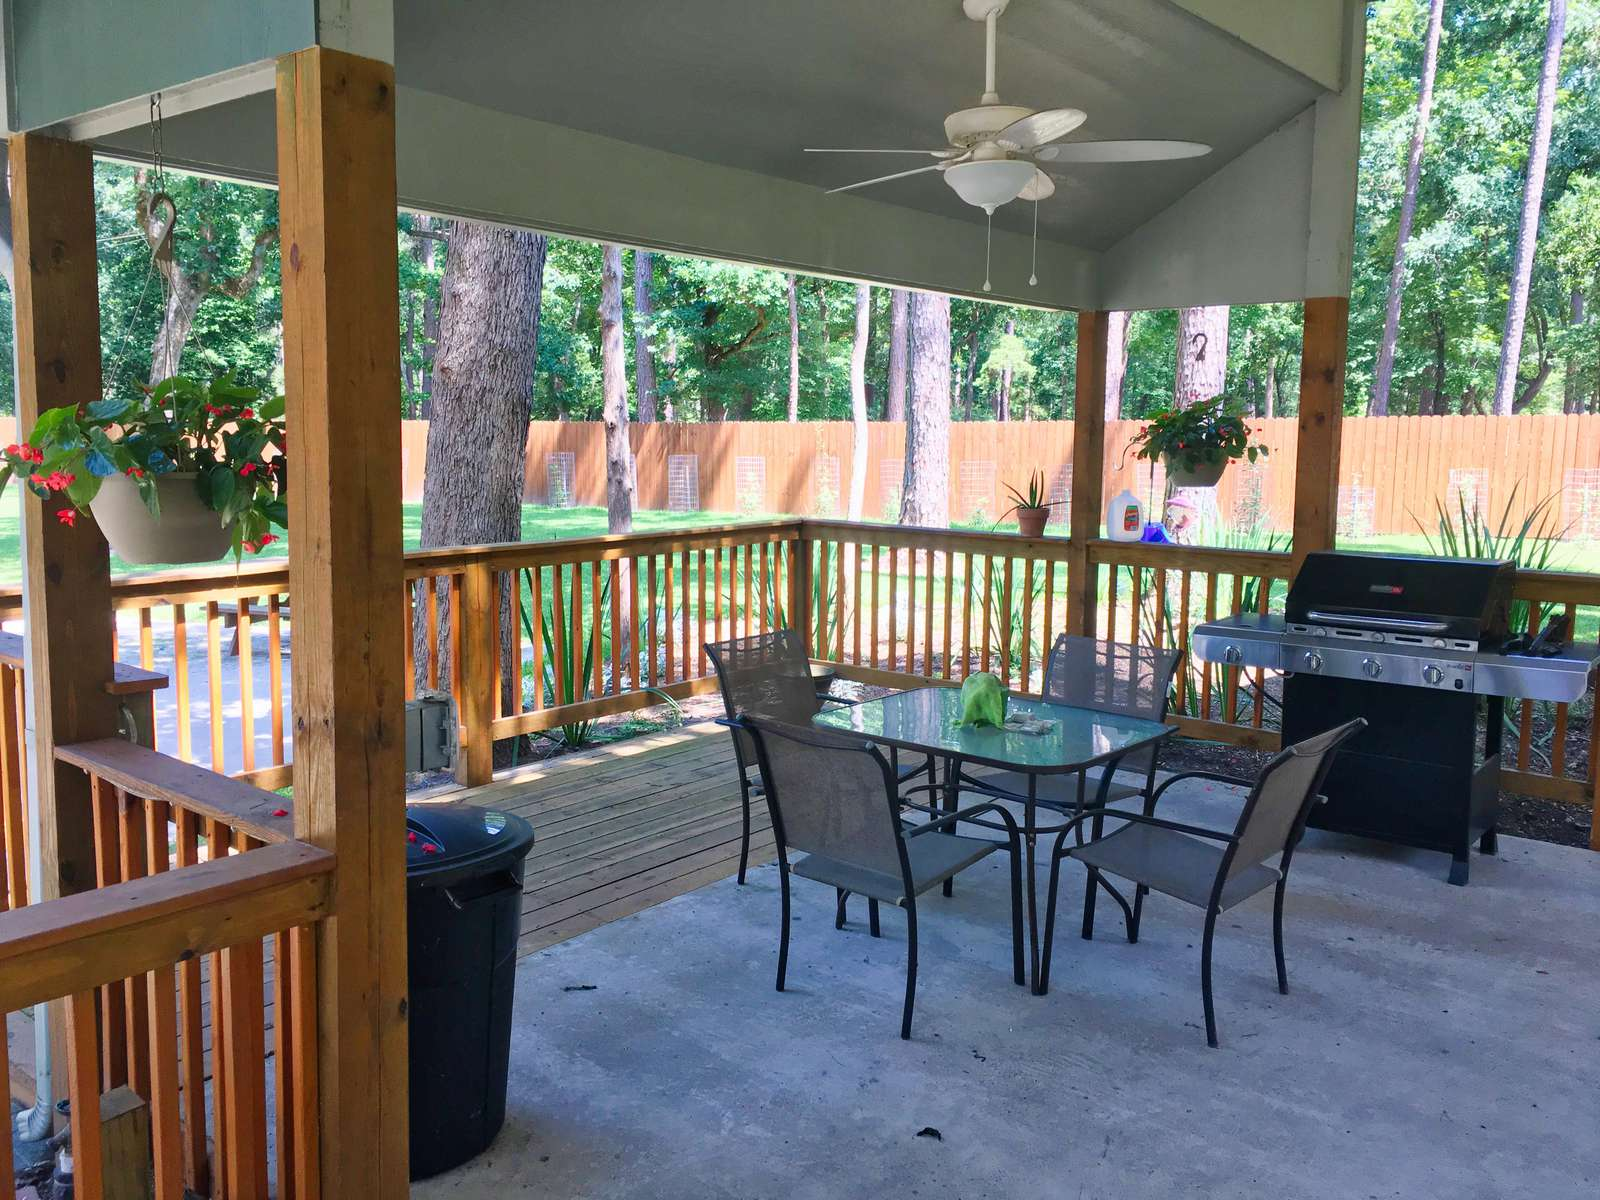 The seating area with fan and deck rail lighting